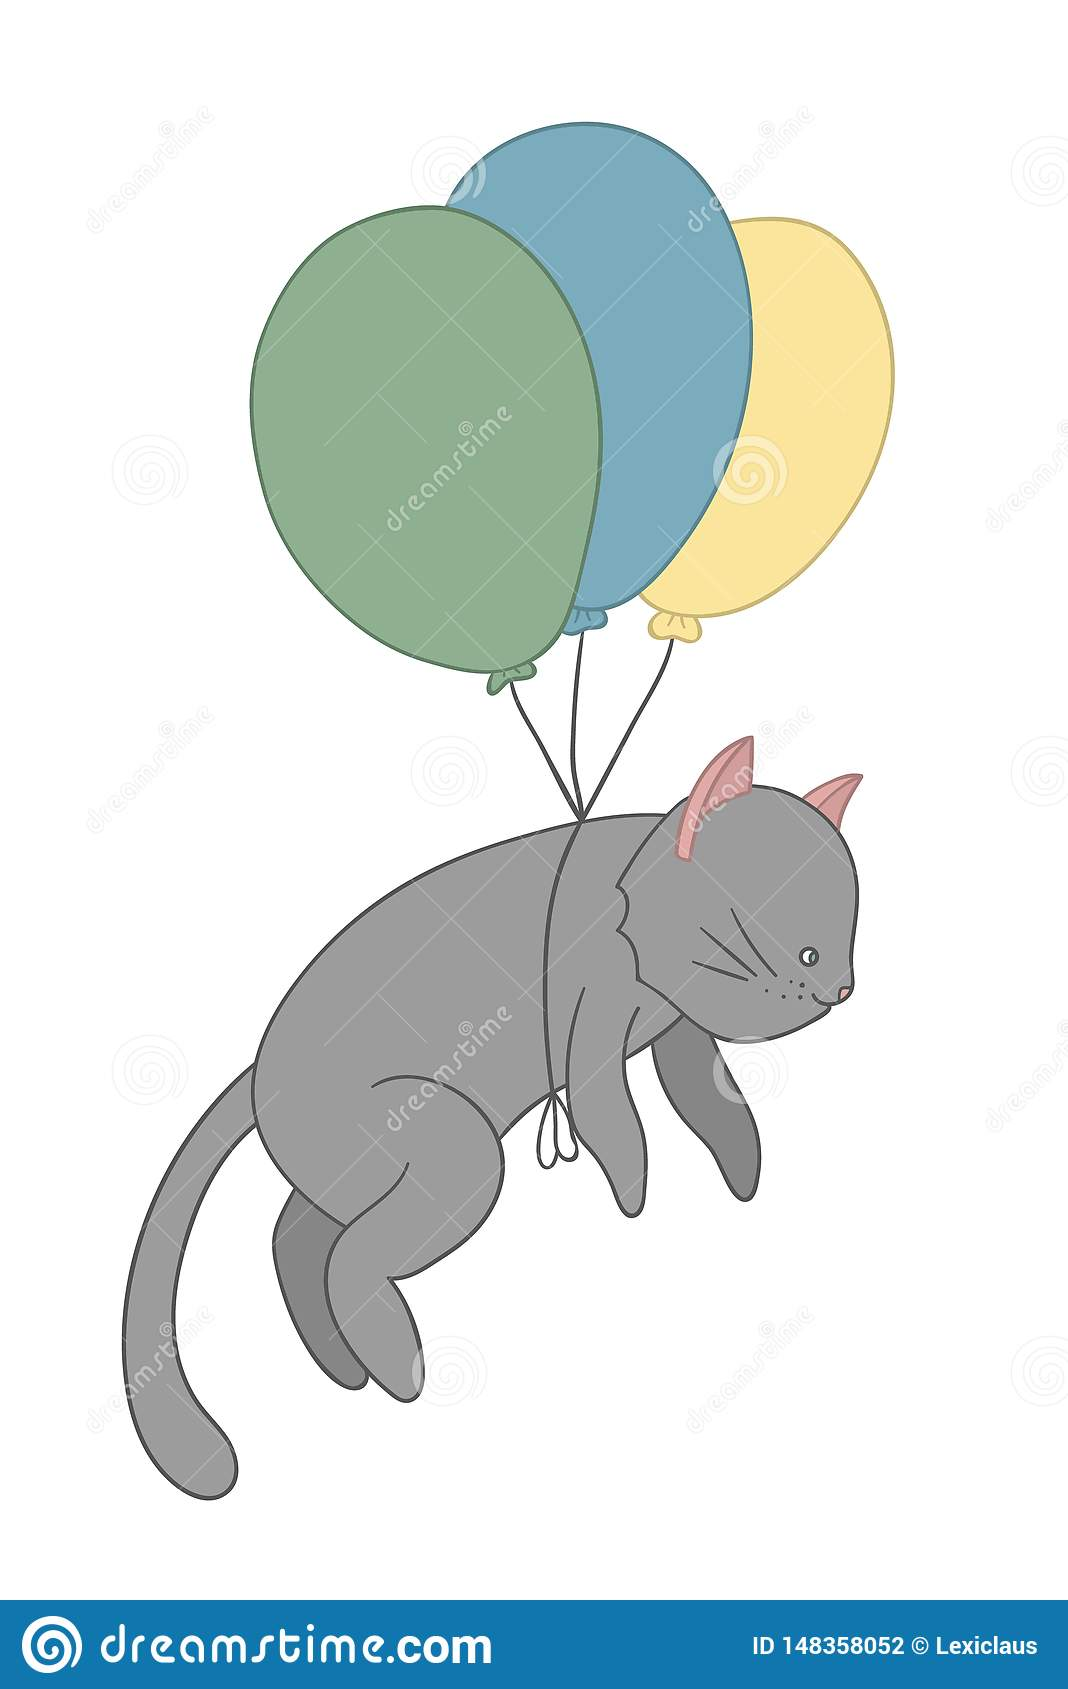 Vector illustration of a cat flying on colored balloons